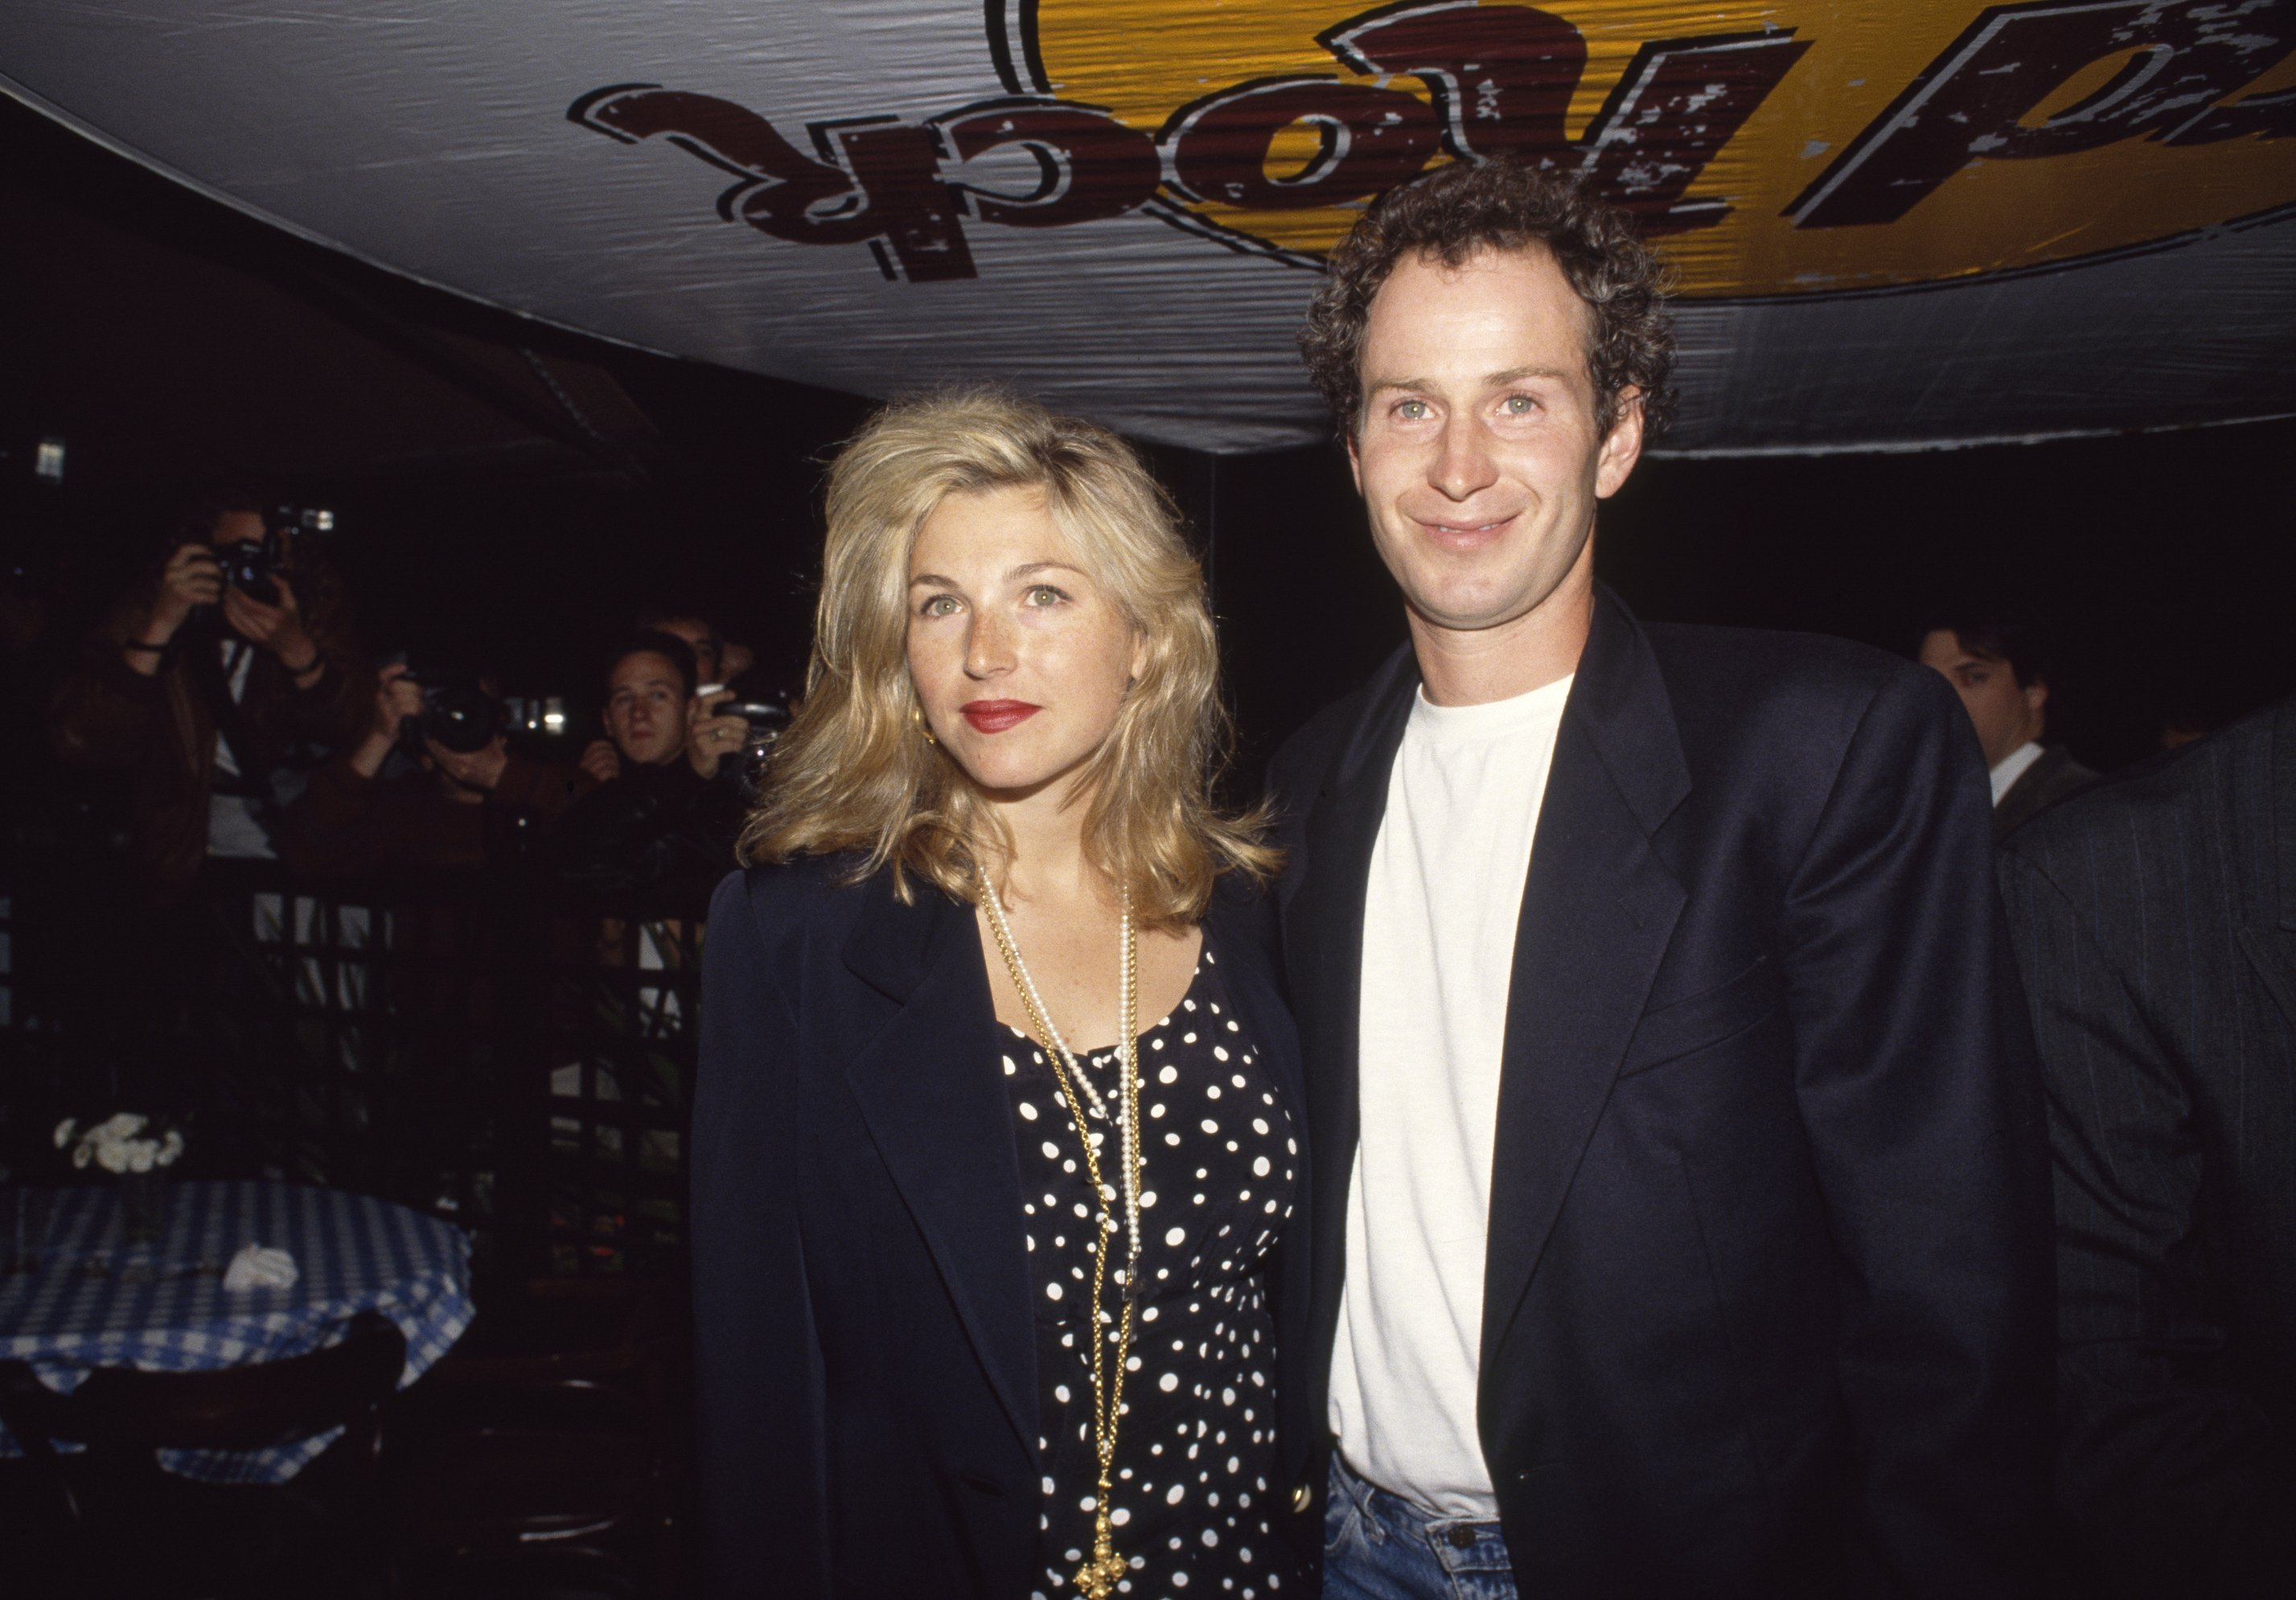 John McEnroe and Tatum O'Neal during the US Open Players' Party at the Hard Rock Cafe in New York, USA circa September 1990. | Photo : Getty Images